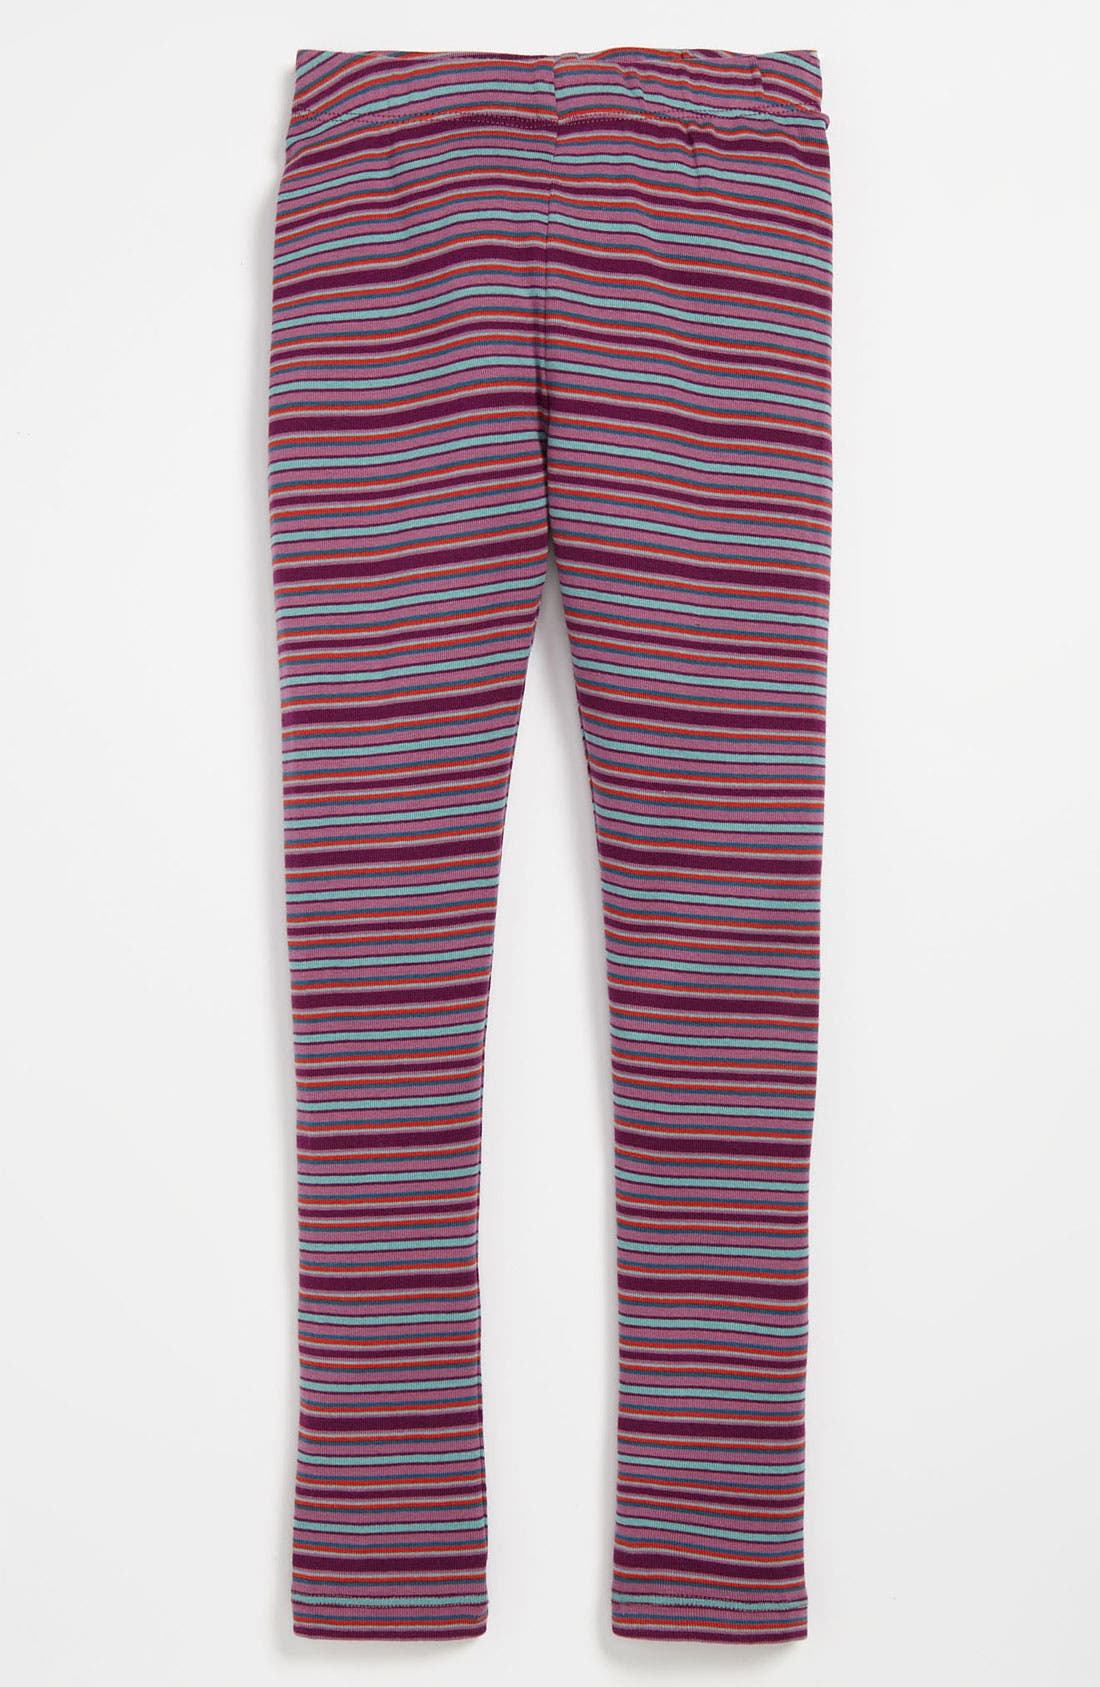 Alternate Image 1 Selected - Tea Collection 'Enchanted' Stripe Leggings (Little Girls & Big Girls)